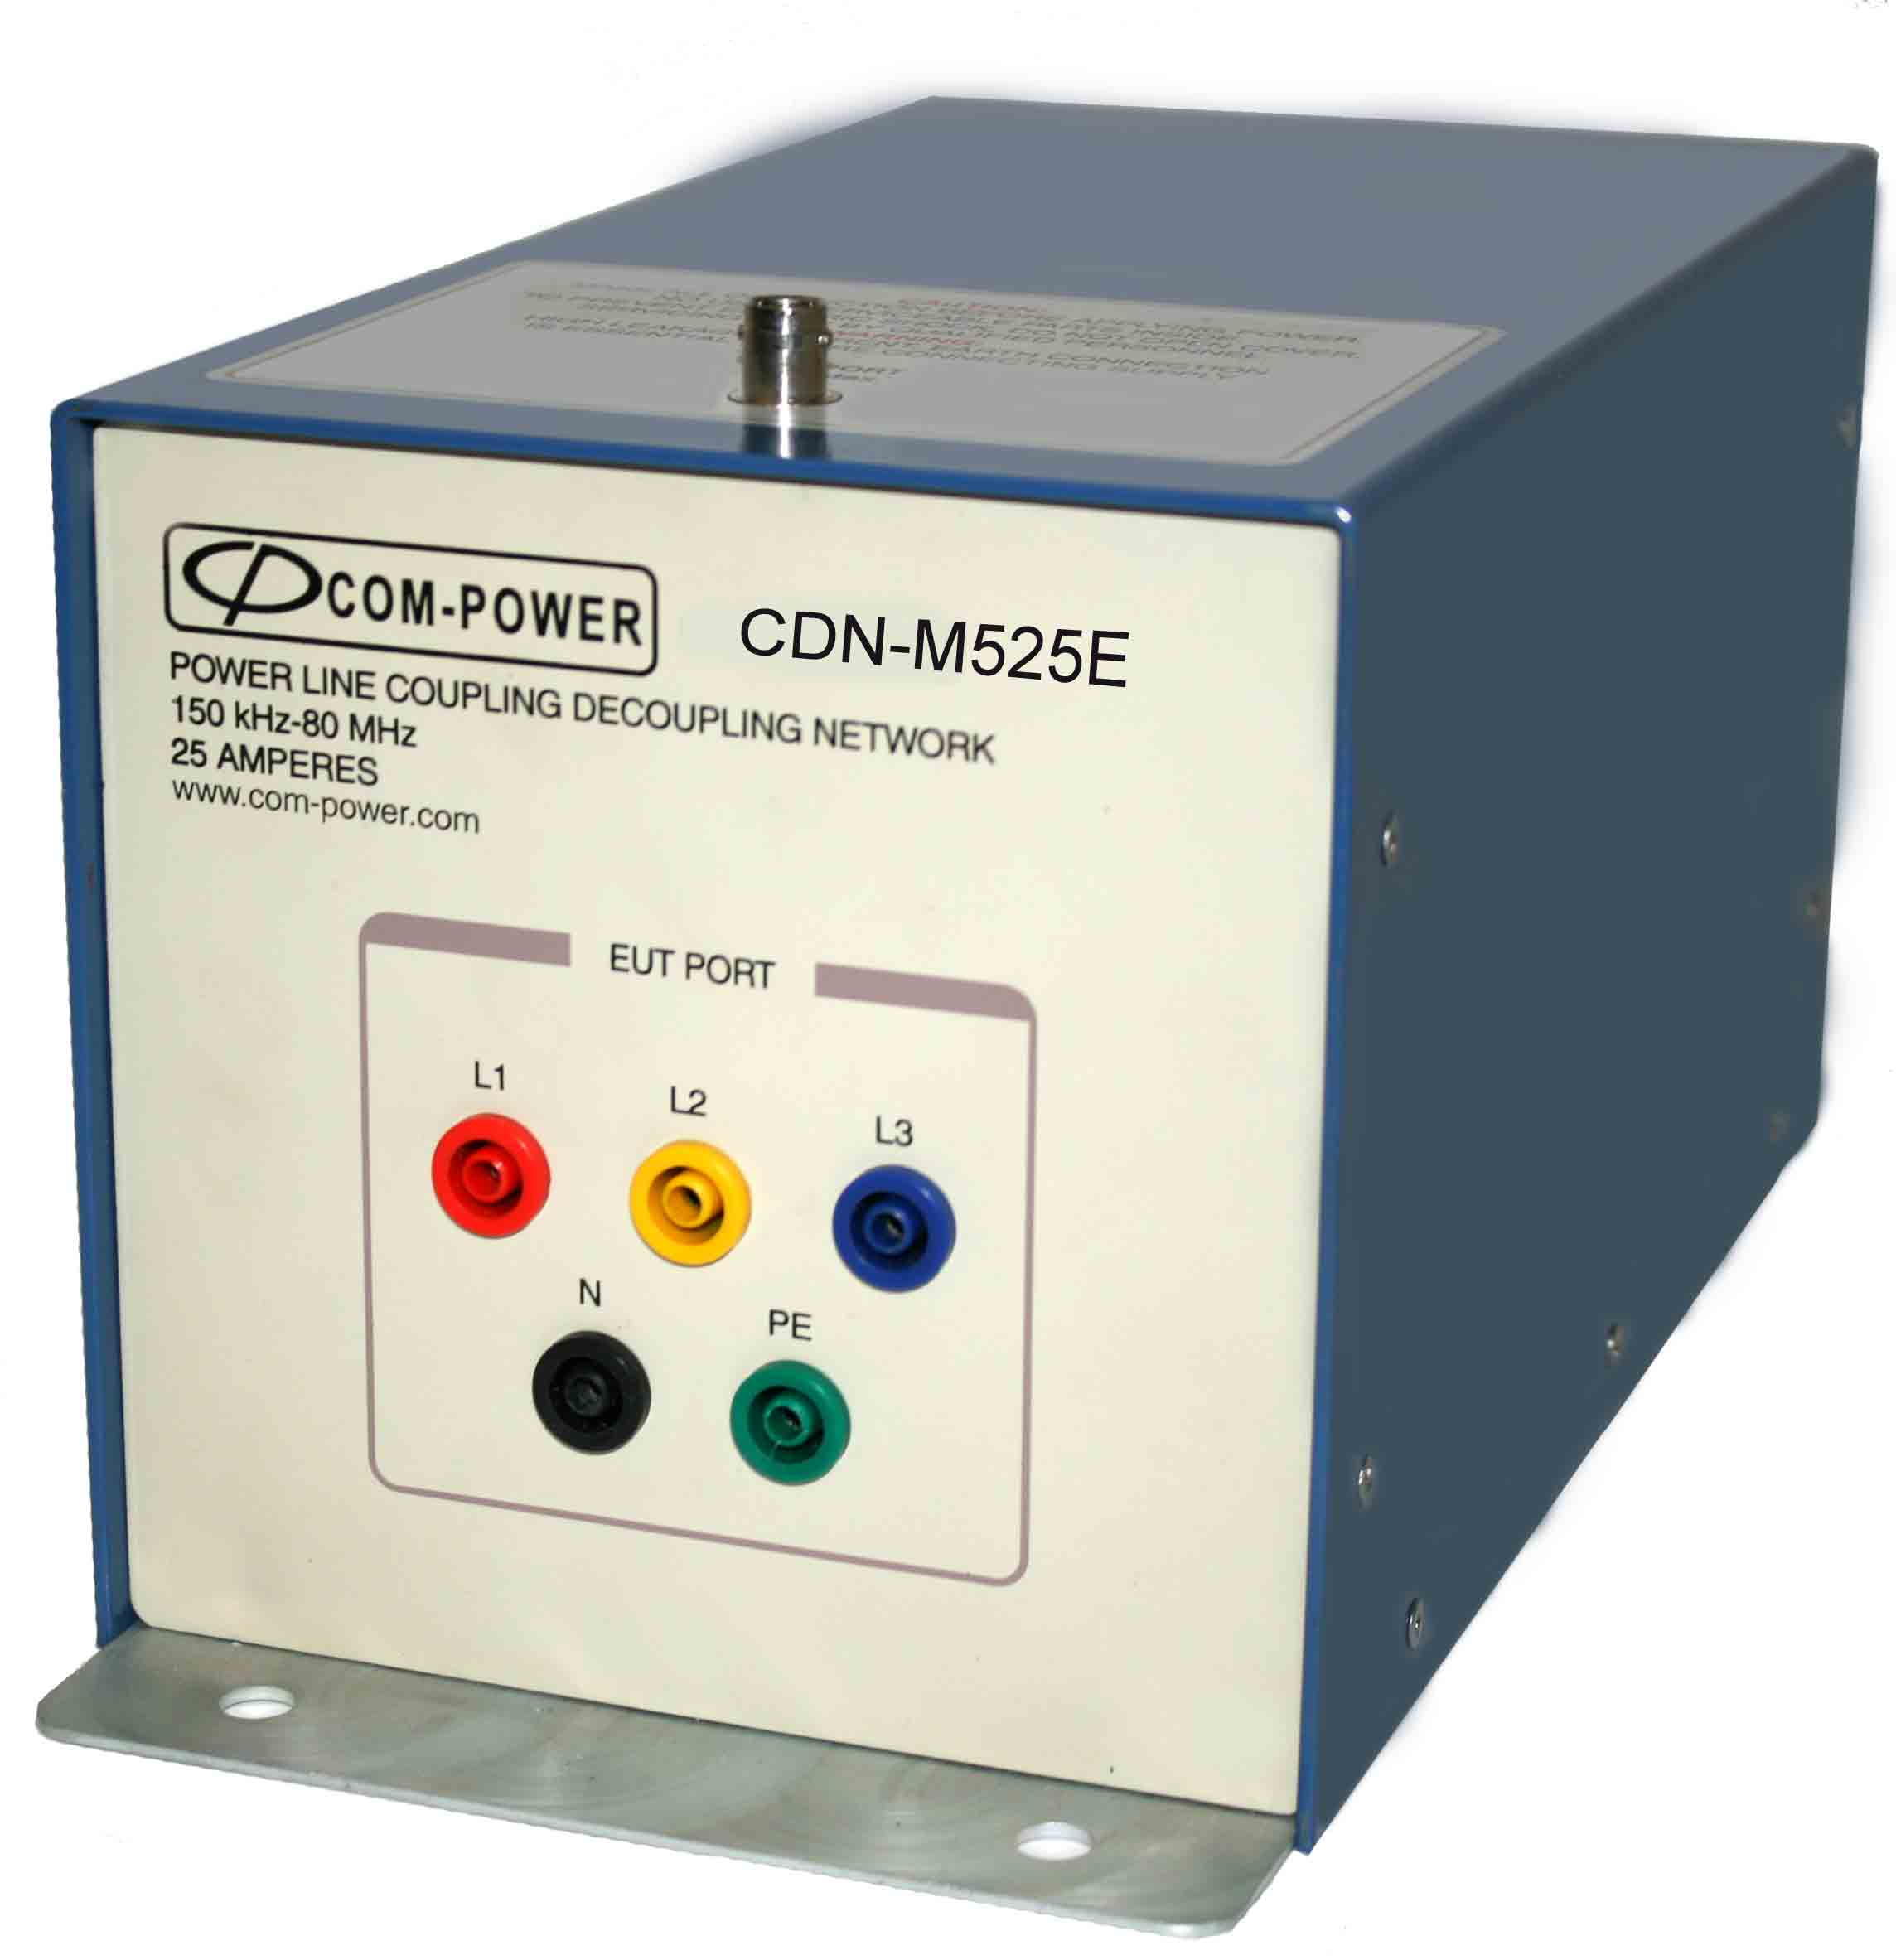 Com-Power CDN-M525E